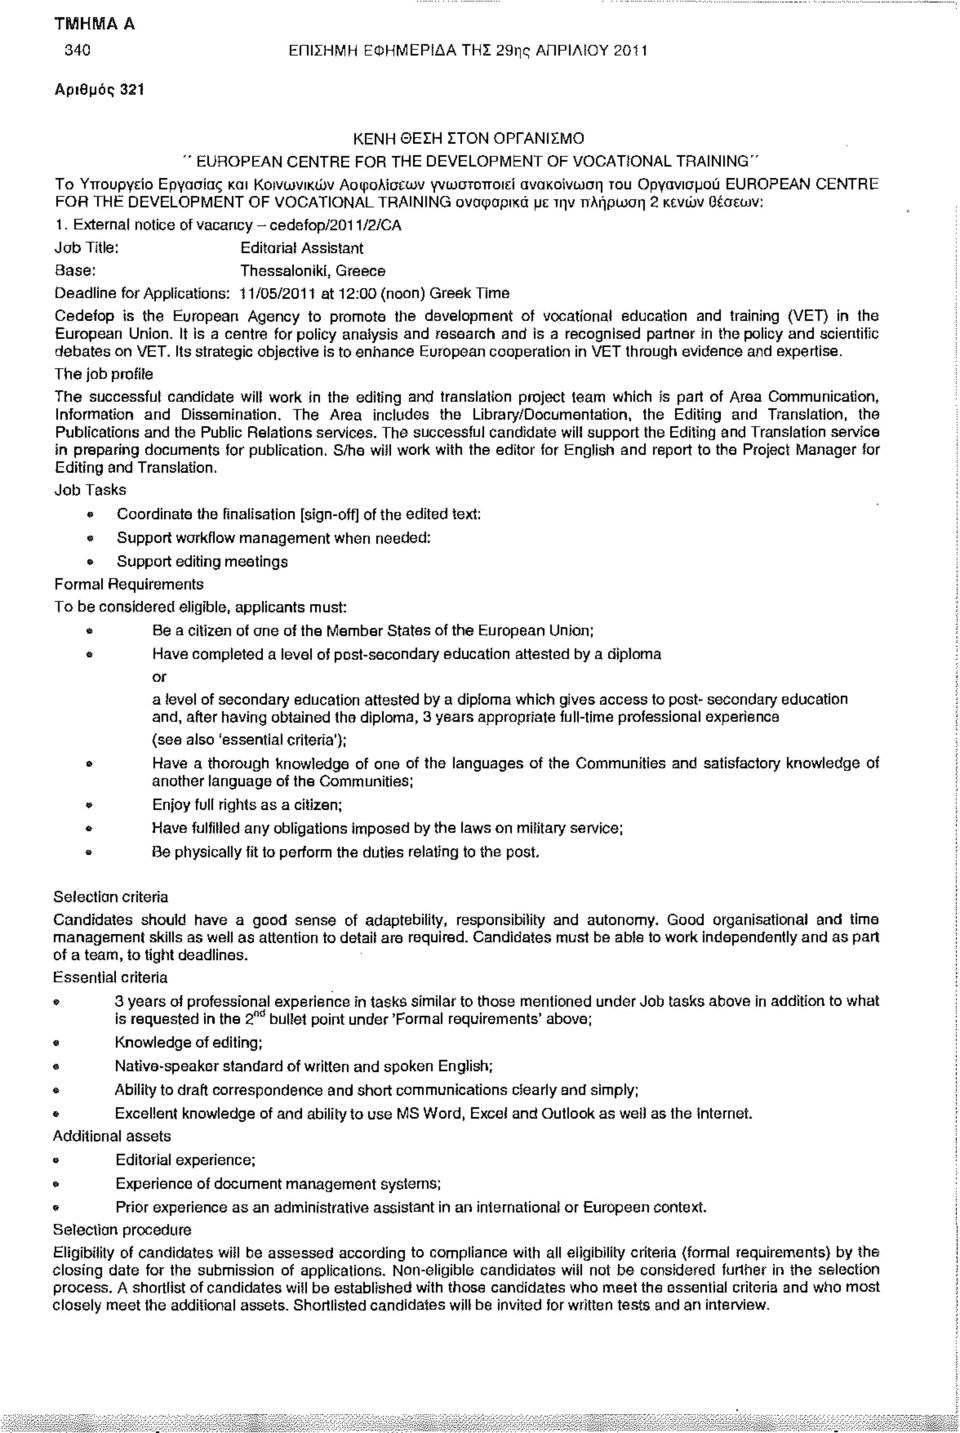 External notice of vacancy - cedefop/2011/2/ca Job Title: Base: Editorial Assistant Thessaloniki, Greece Deadline for Applications: 11/05/2011 at 12:00 (noon) Greek Time Cedefop is the European